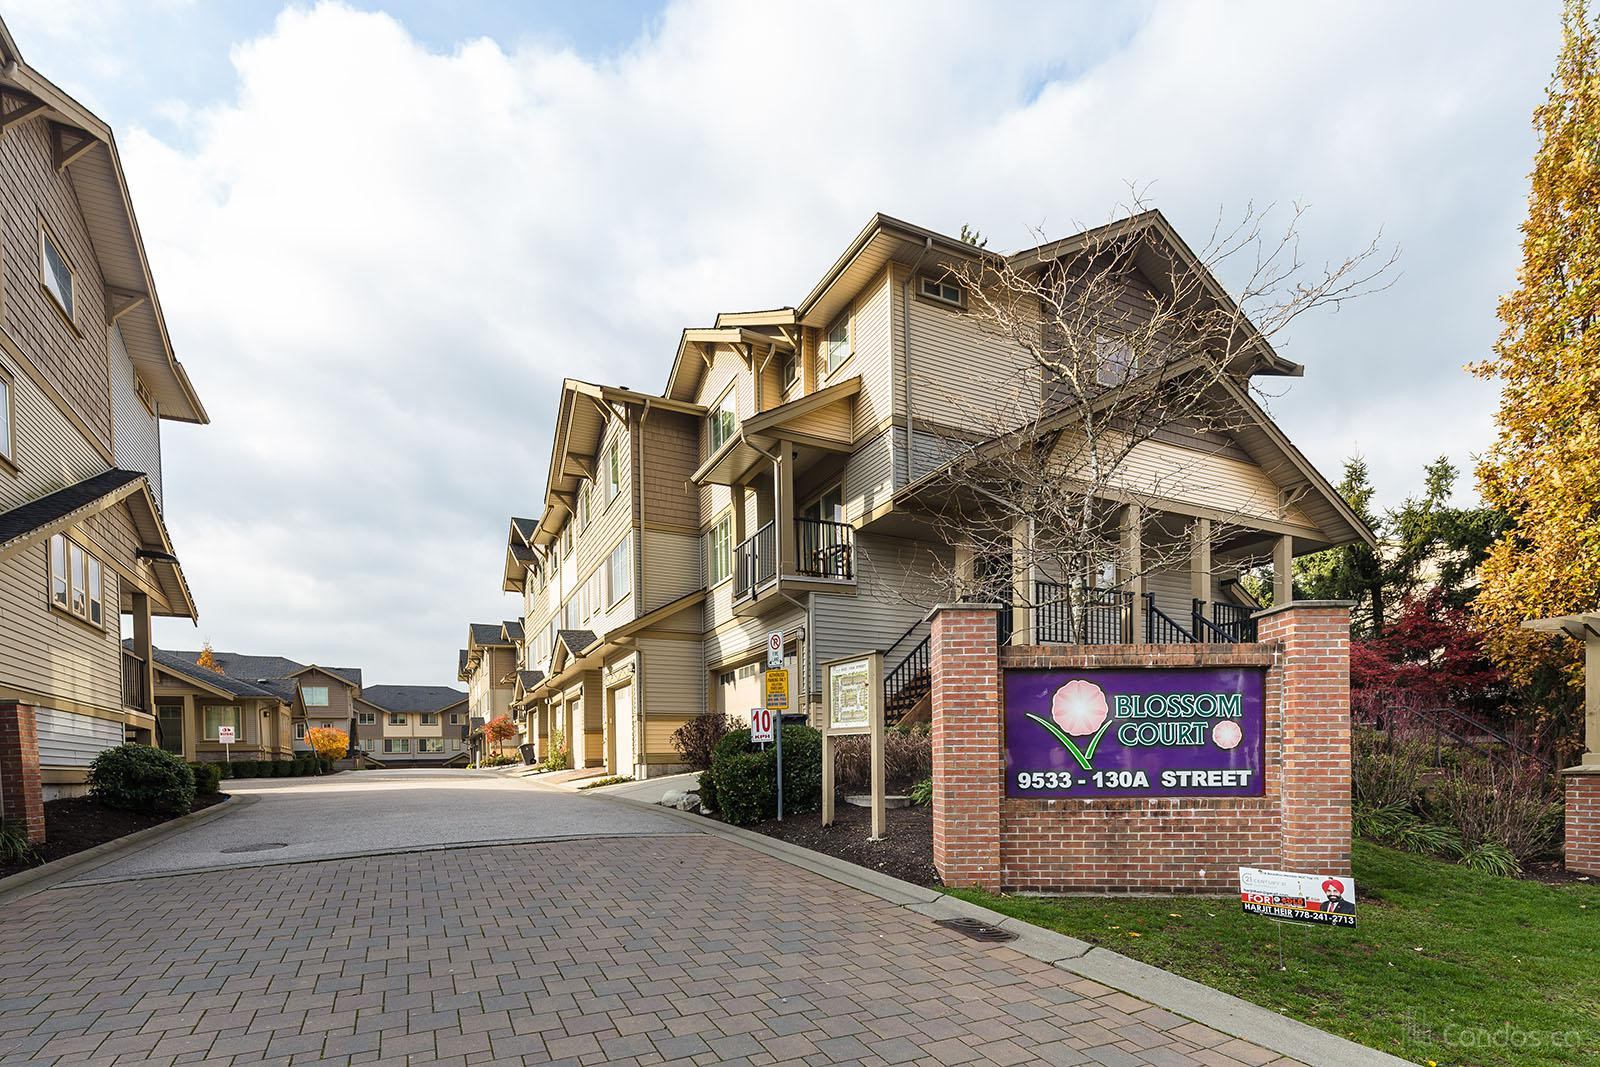 Blossom Court at 9533 130a St, Surrey 1